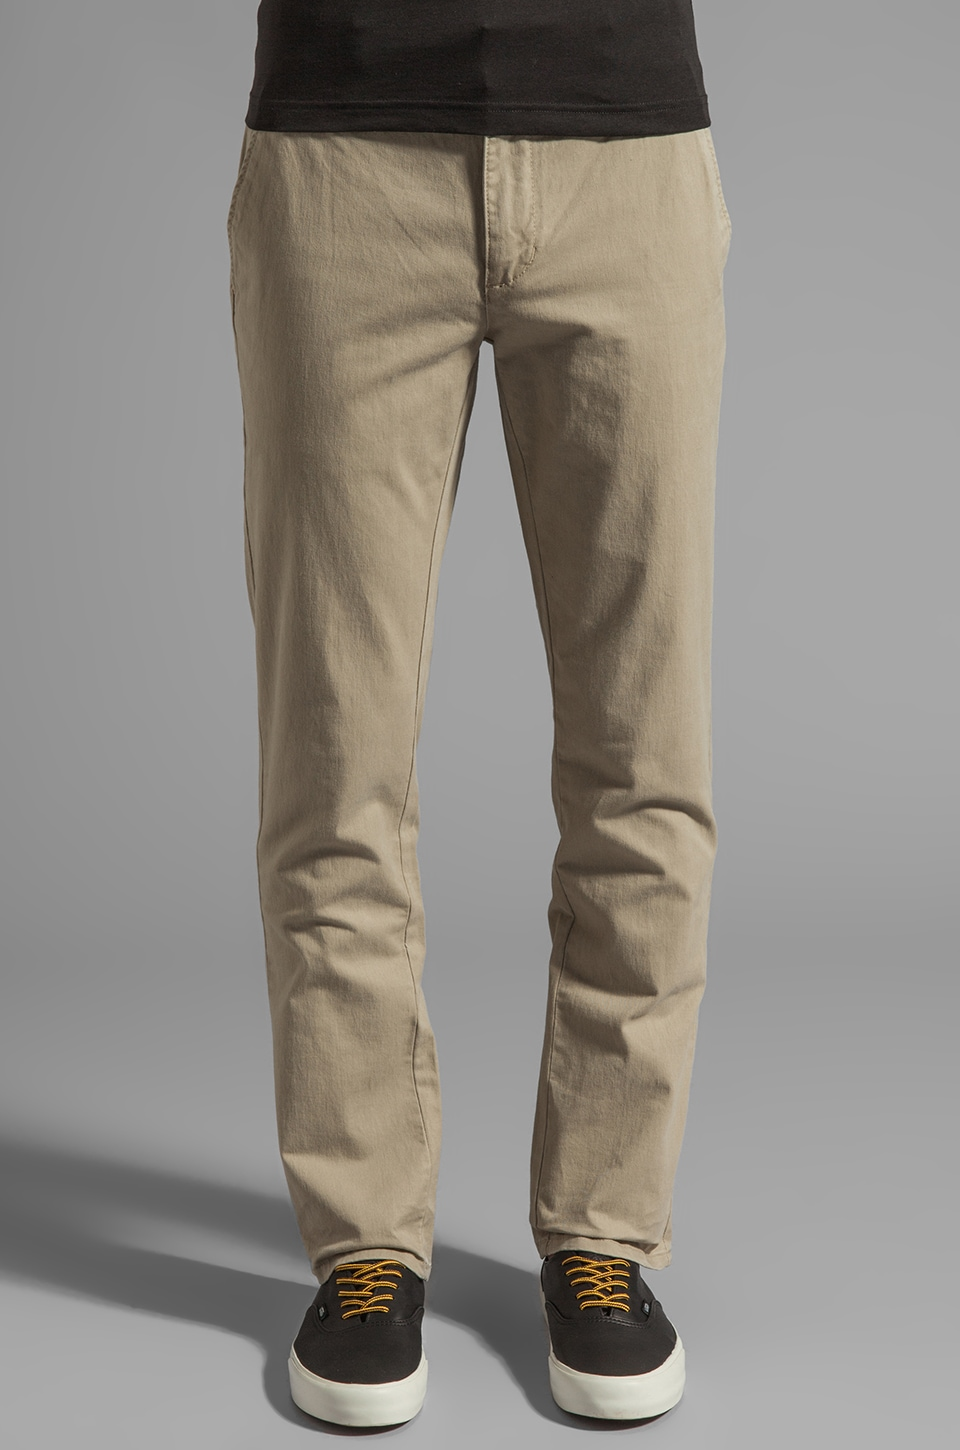 RVCA All Time Chino Pant in Khaki